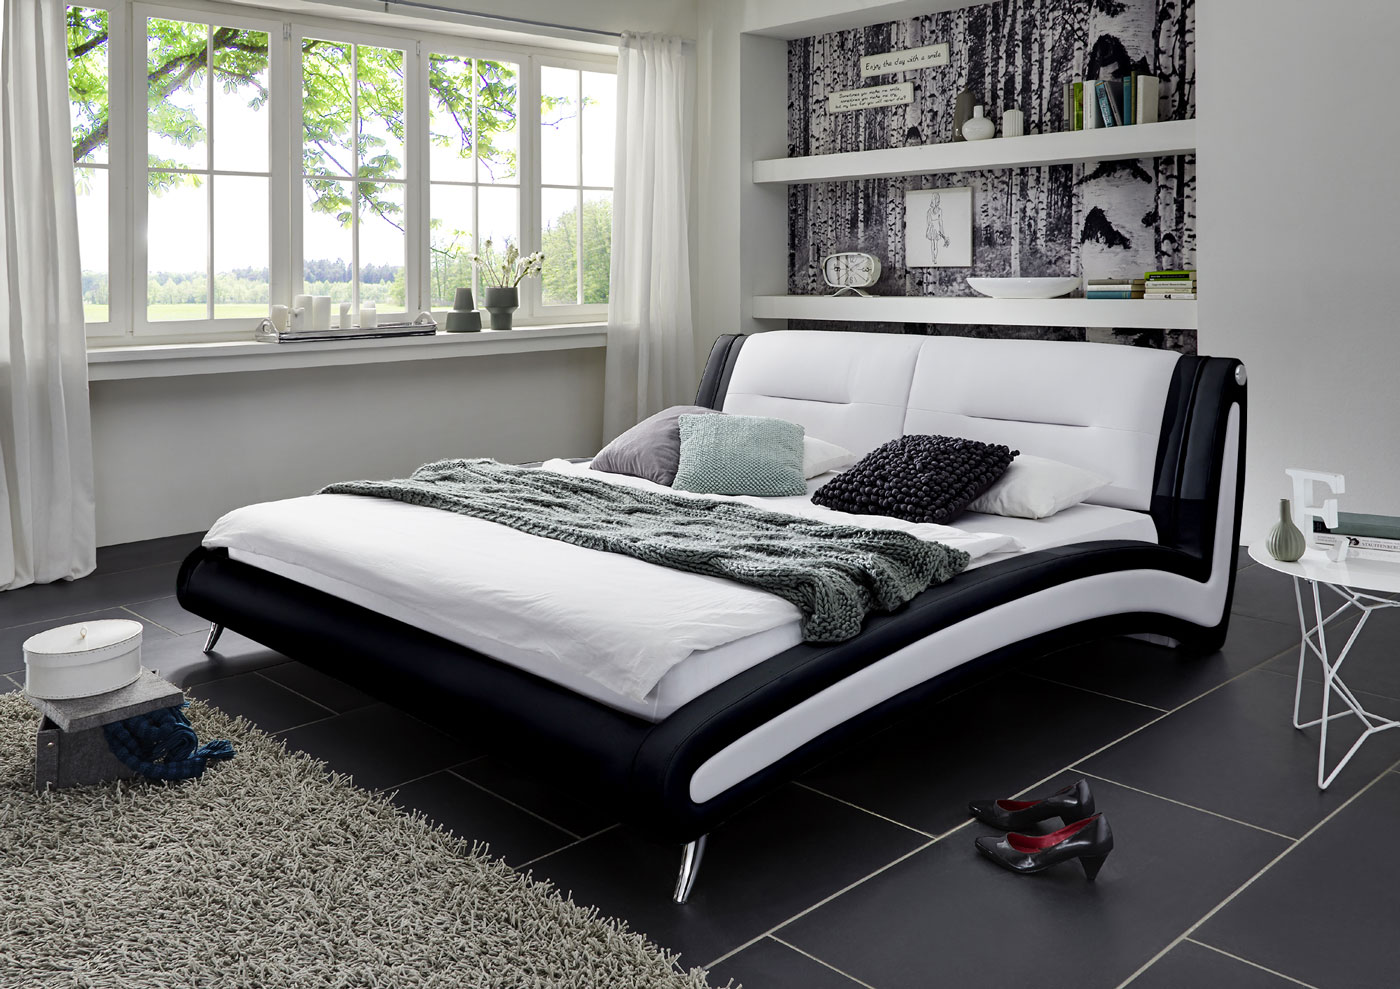 sam polsterbett doppelbett 140 x 200 cm schwarz wei swing. Black Bedroom Furniture Sets. Home Design Ideas